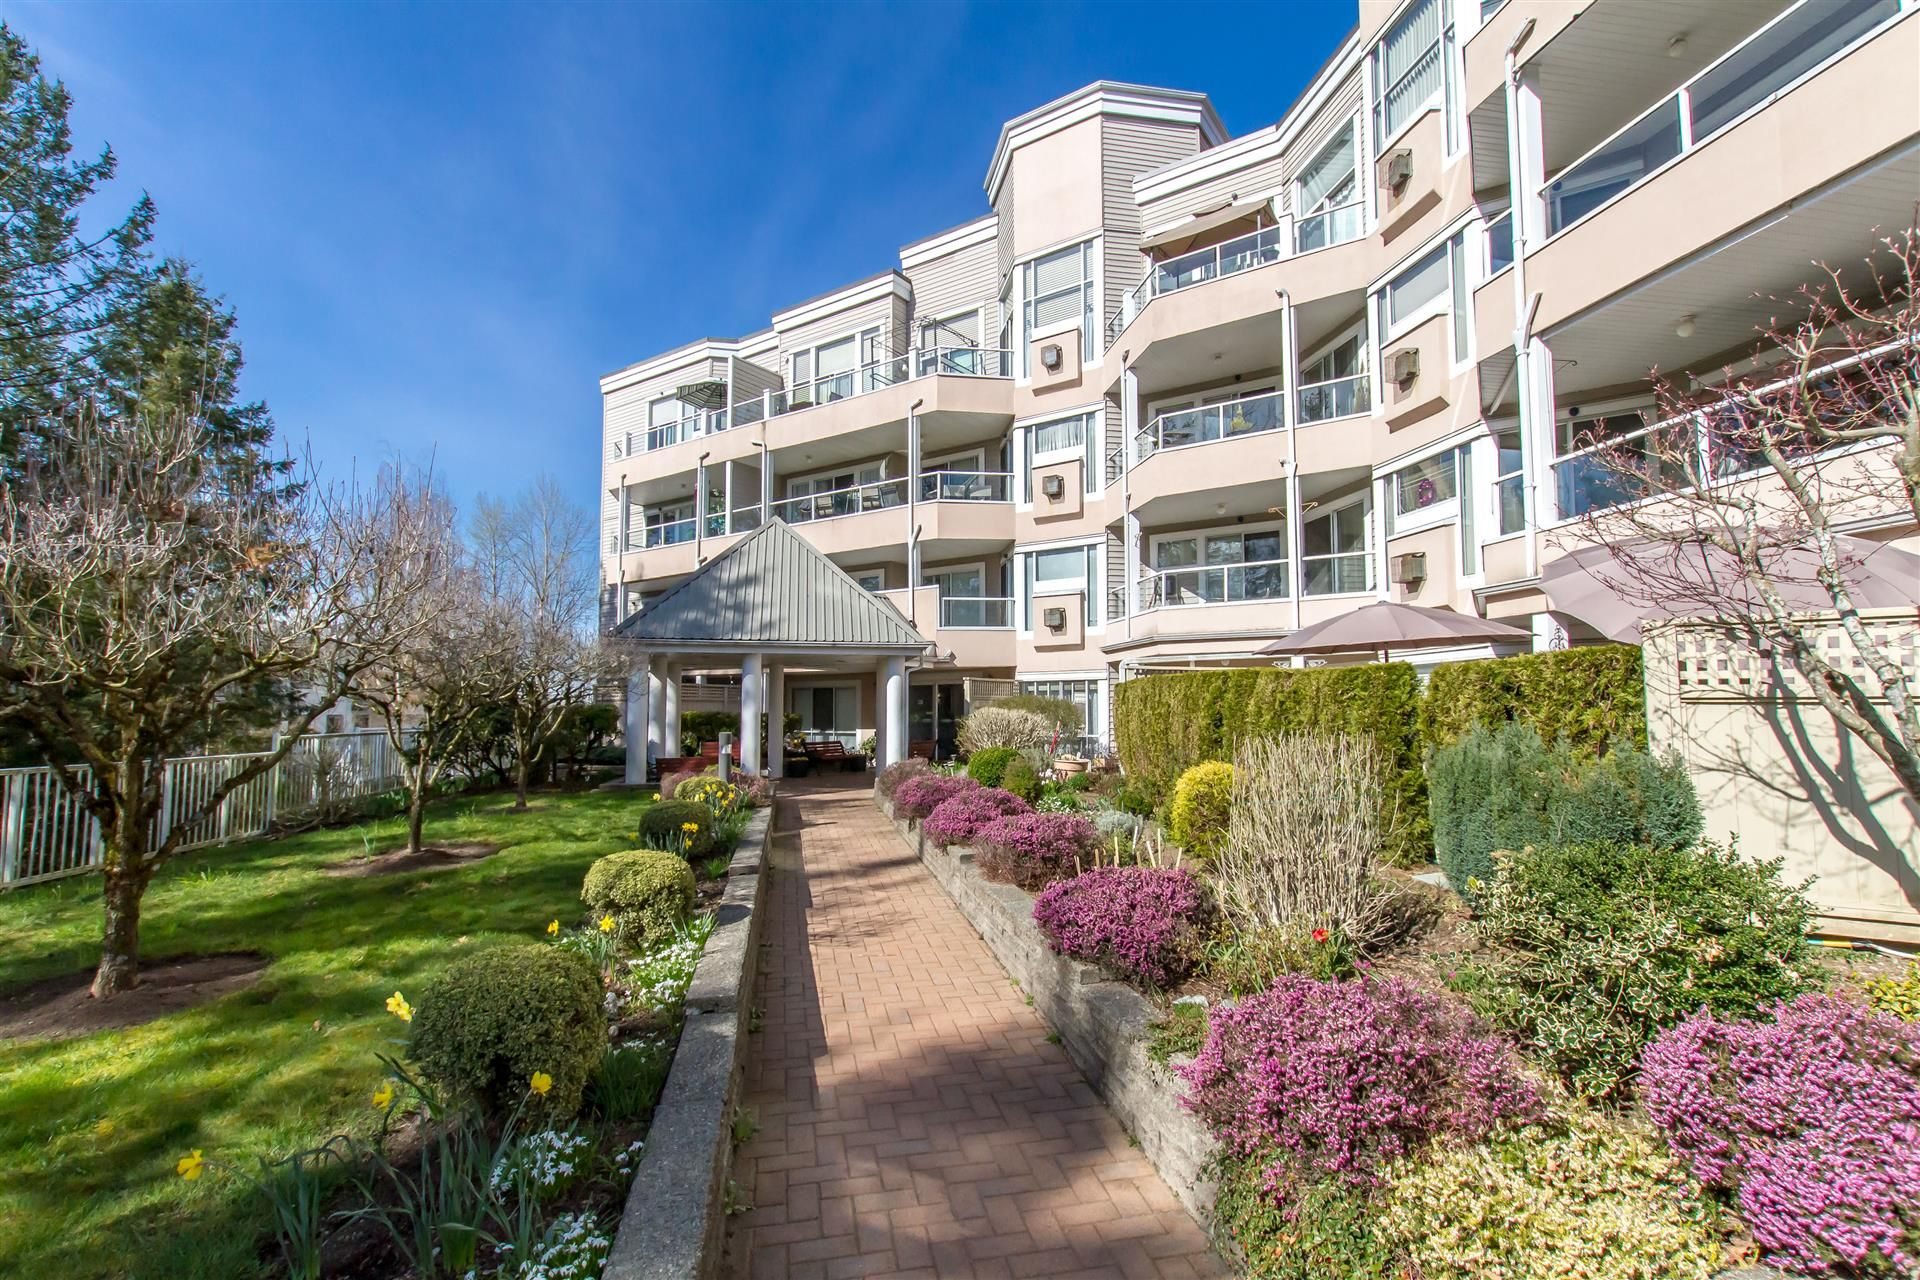 """Main Photo: 217 11605 227 Street in Maple Ridge: East Central Condo for sale in """"THE HILLCREST"""" : MLS®# R2382666"""